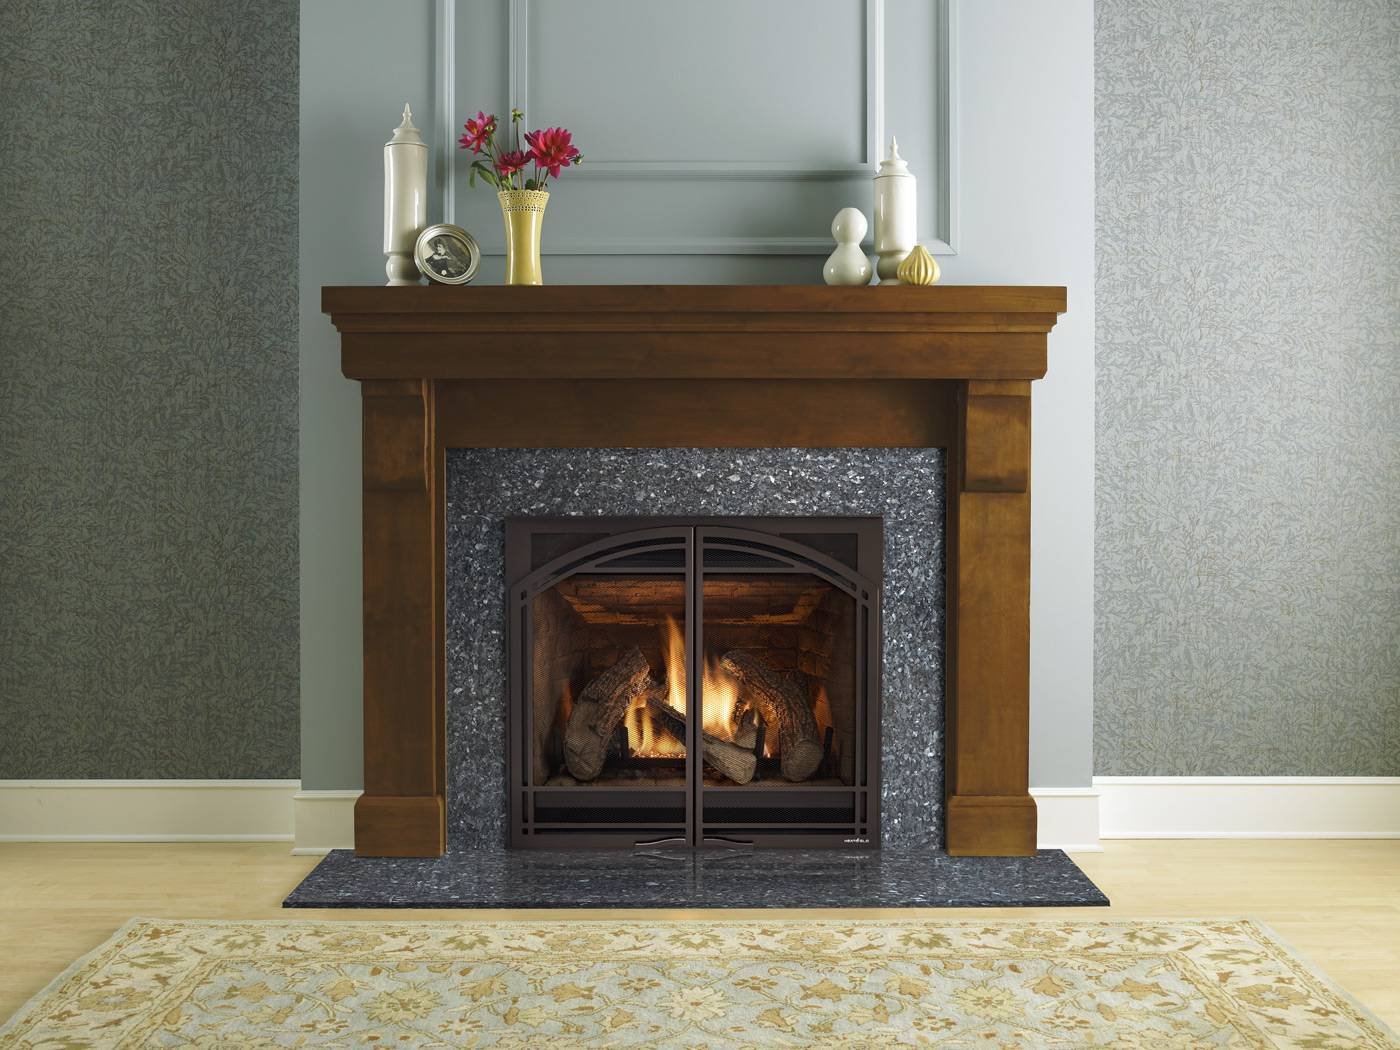 Upgrade To A Gas Fireplace For Fall All Year Chimney Sweeps Repair